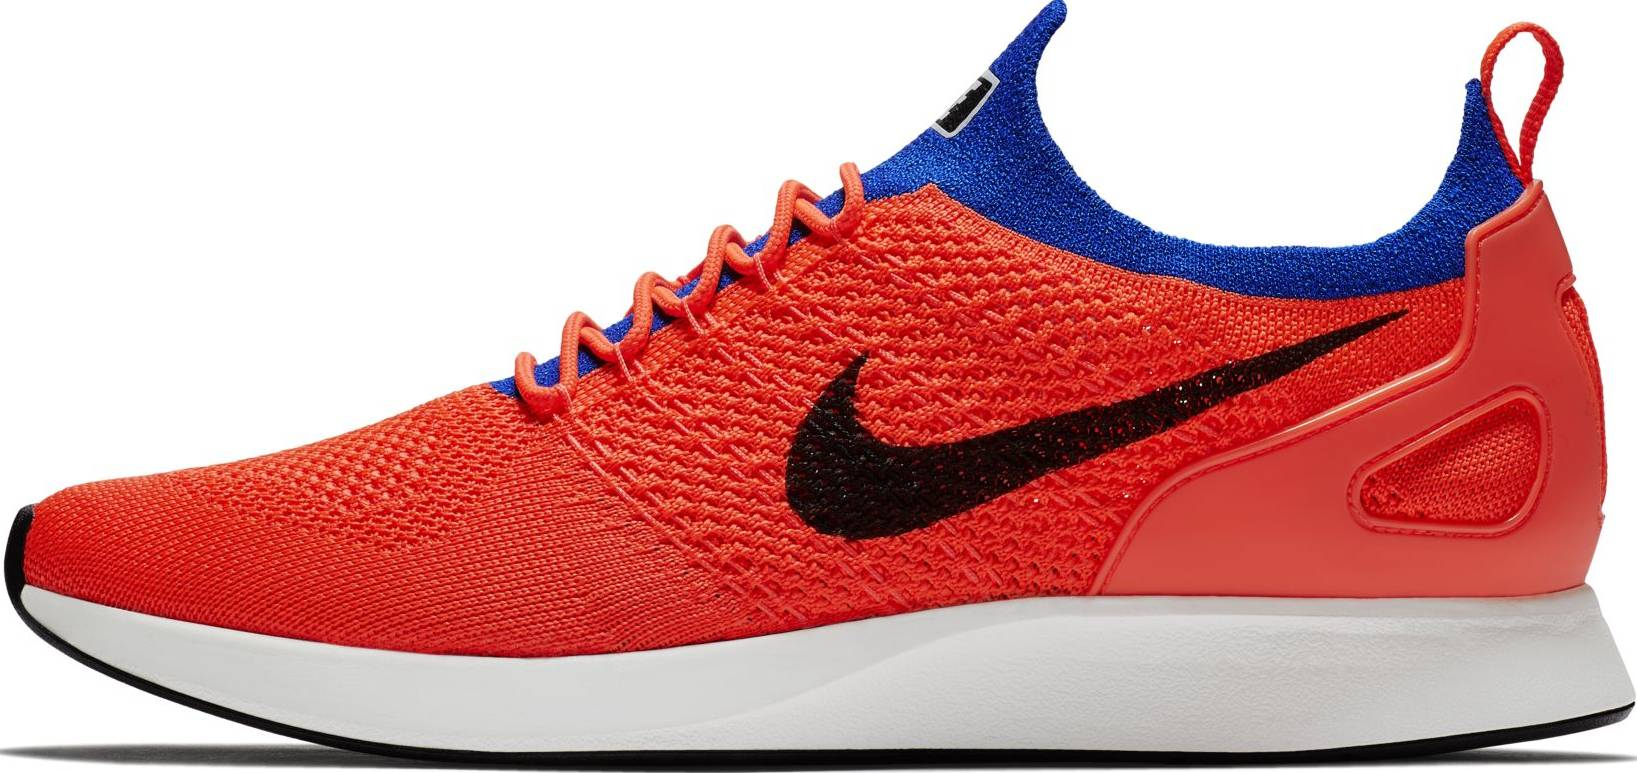 temporal alfiler análisis  Only $52 + Review of Nike Air Zoom Mariah Flyknit Racer | RunRepeat